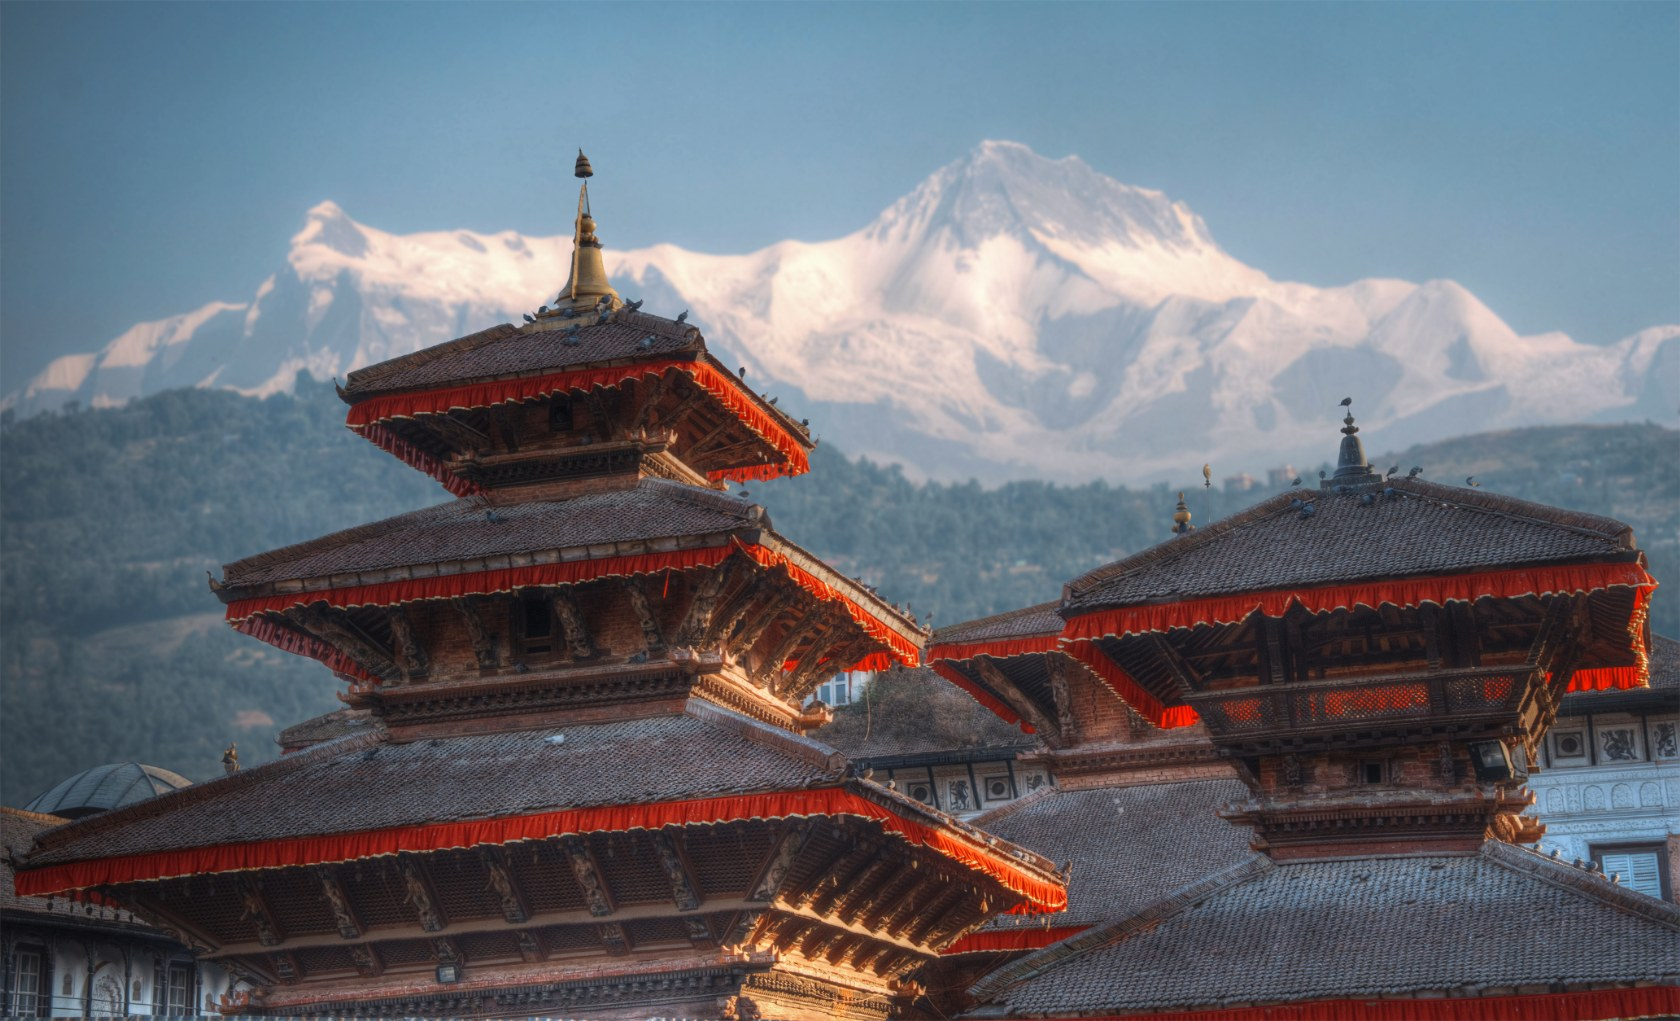 Ancient City of Patan in the Kathmandu Valley, Nepal